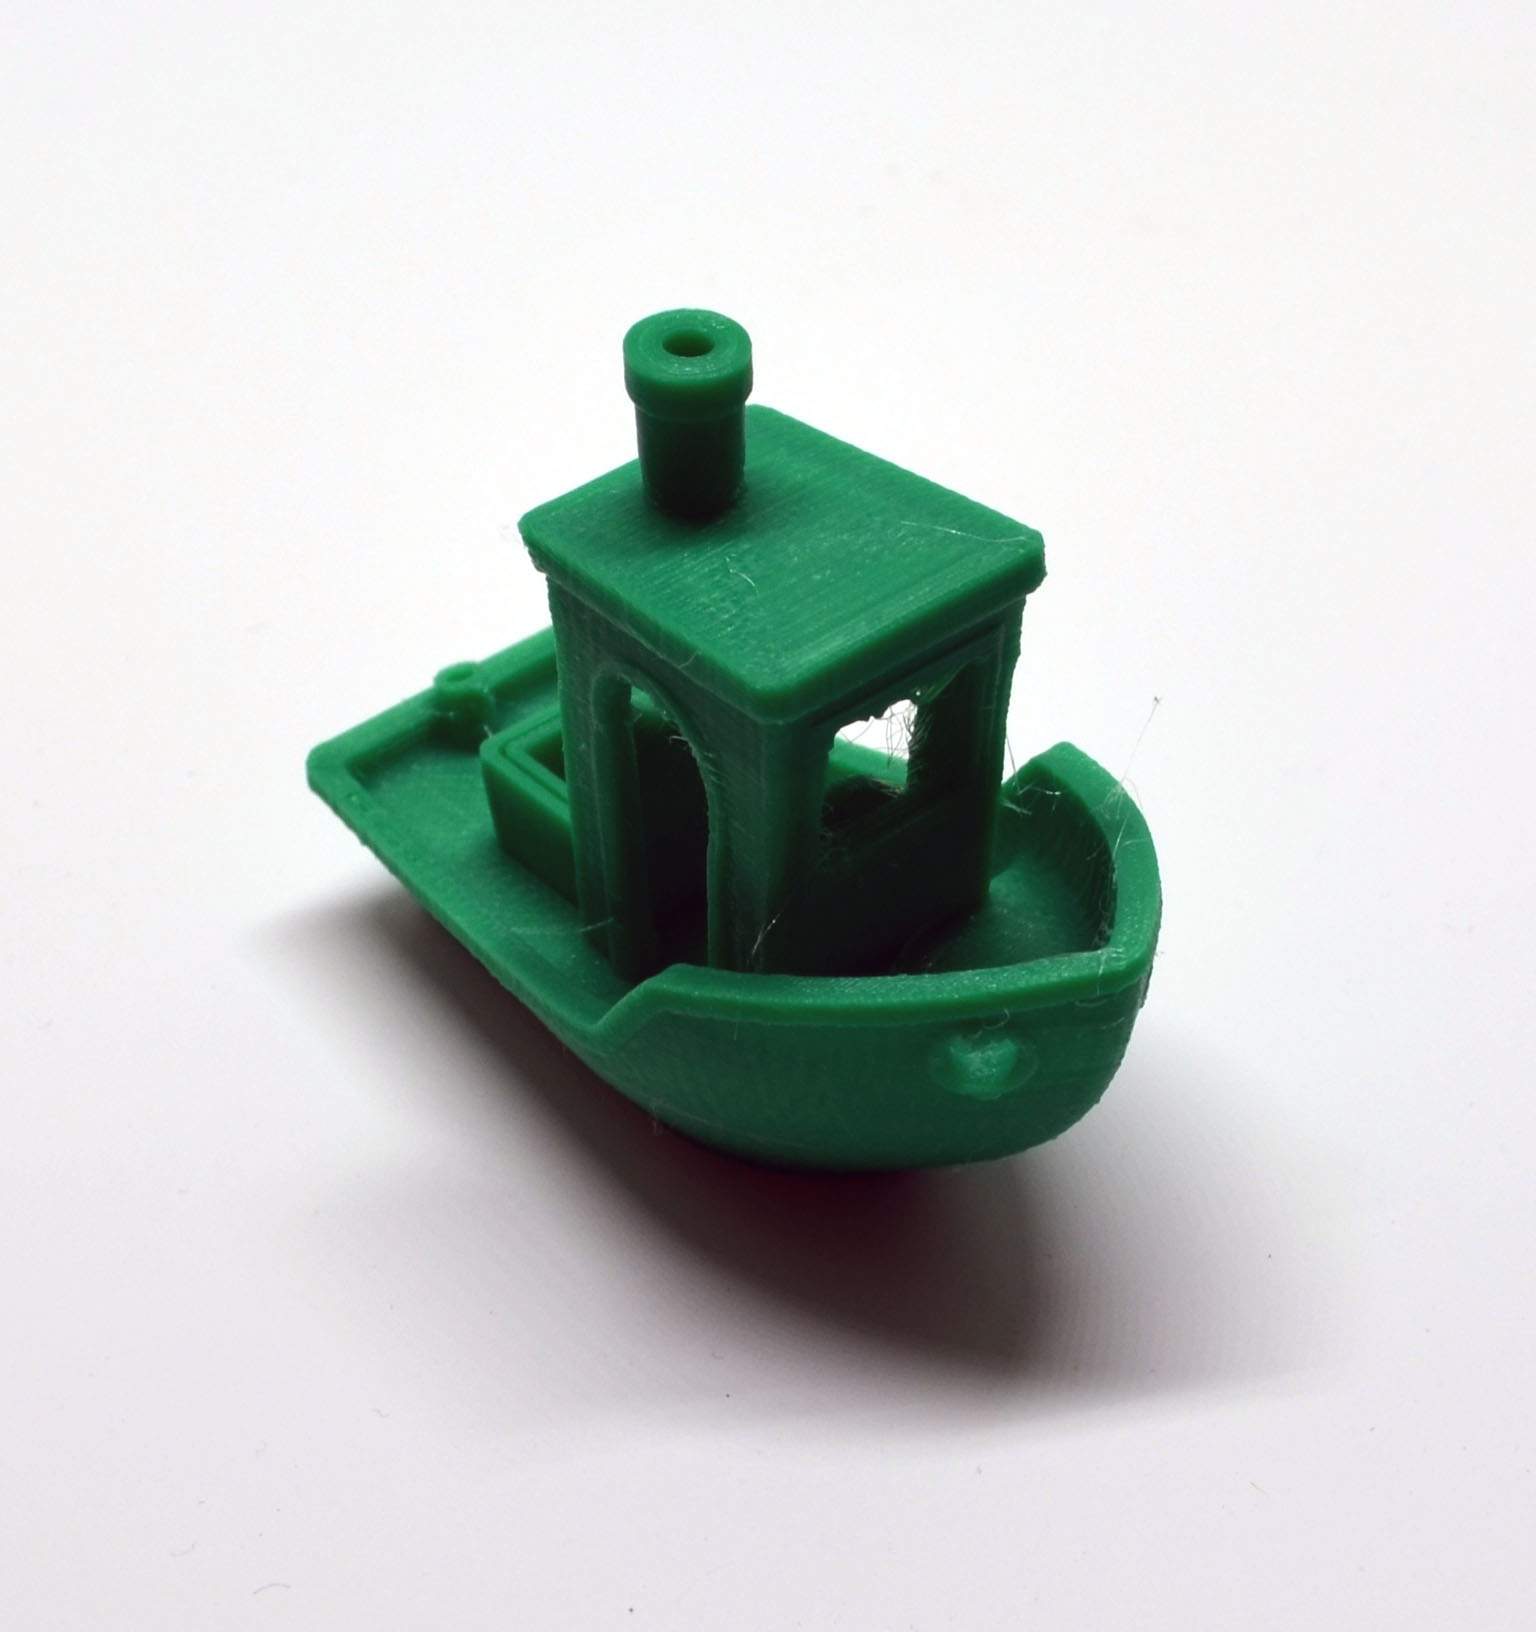 The front of the 3DBenchy. I still have some post print clean-up to do to remove the stringing in the open areas, but overall it came out as a nice, clean print.